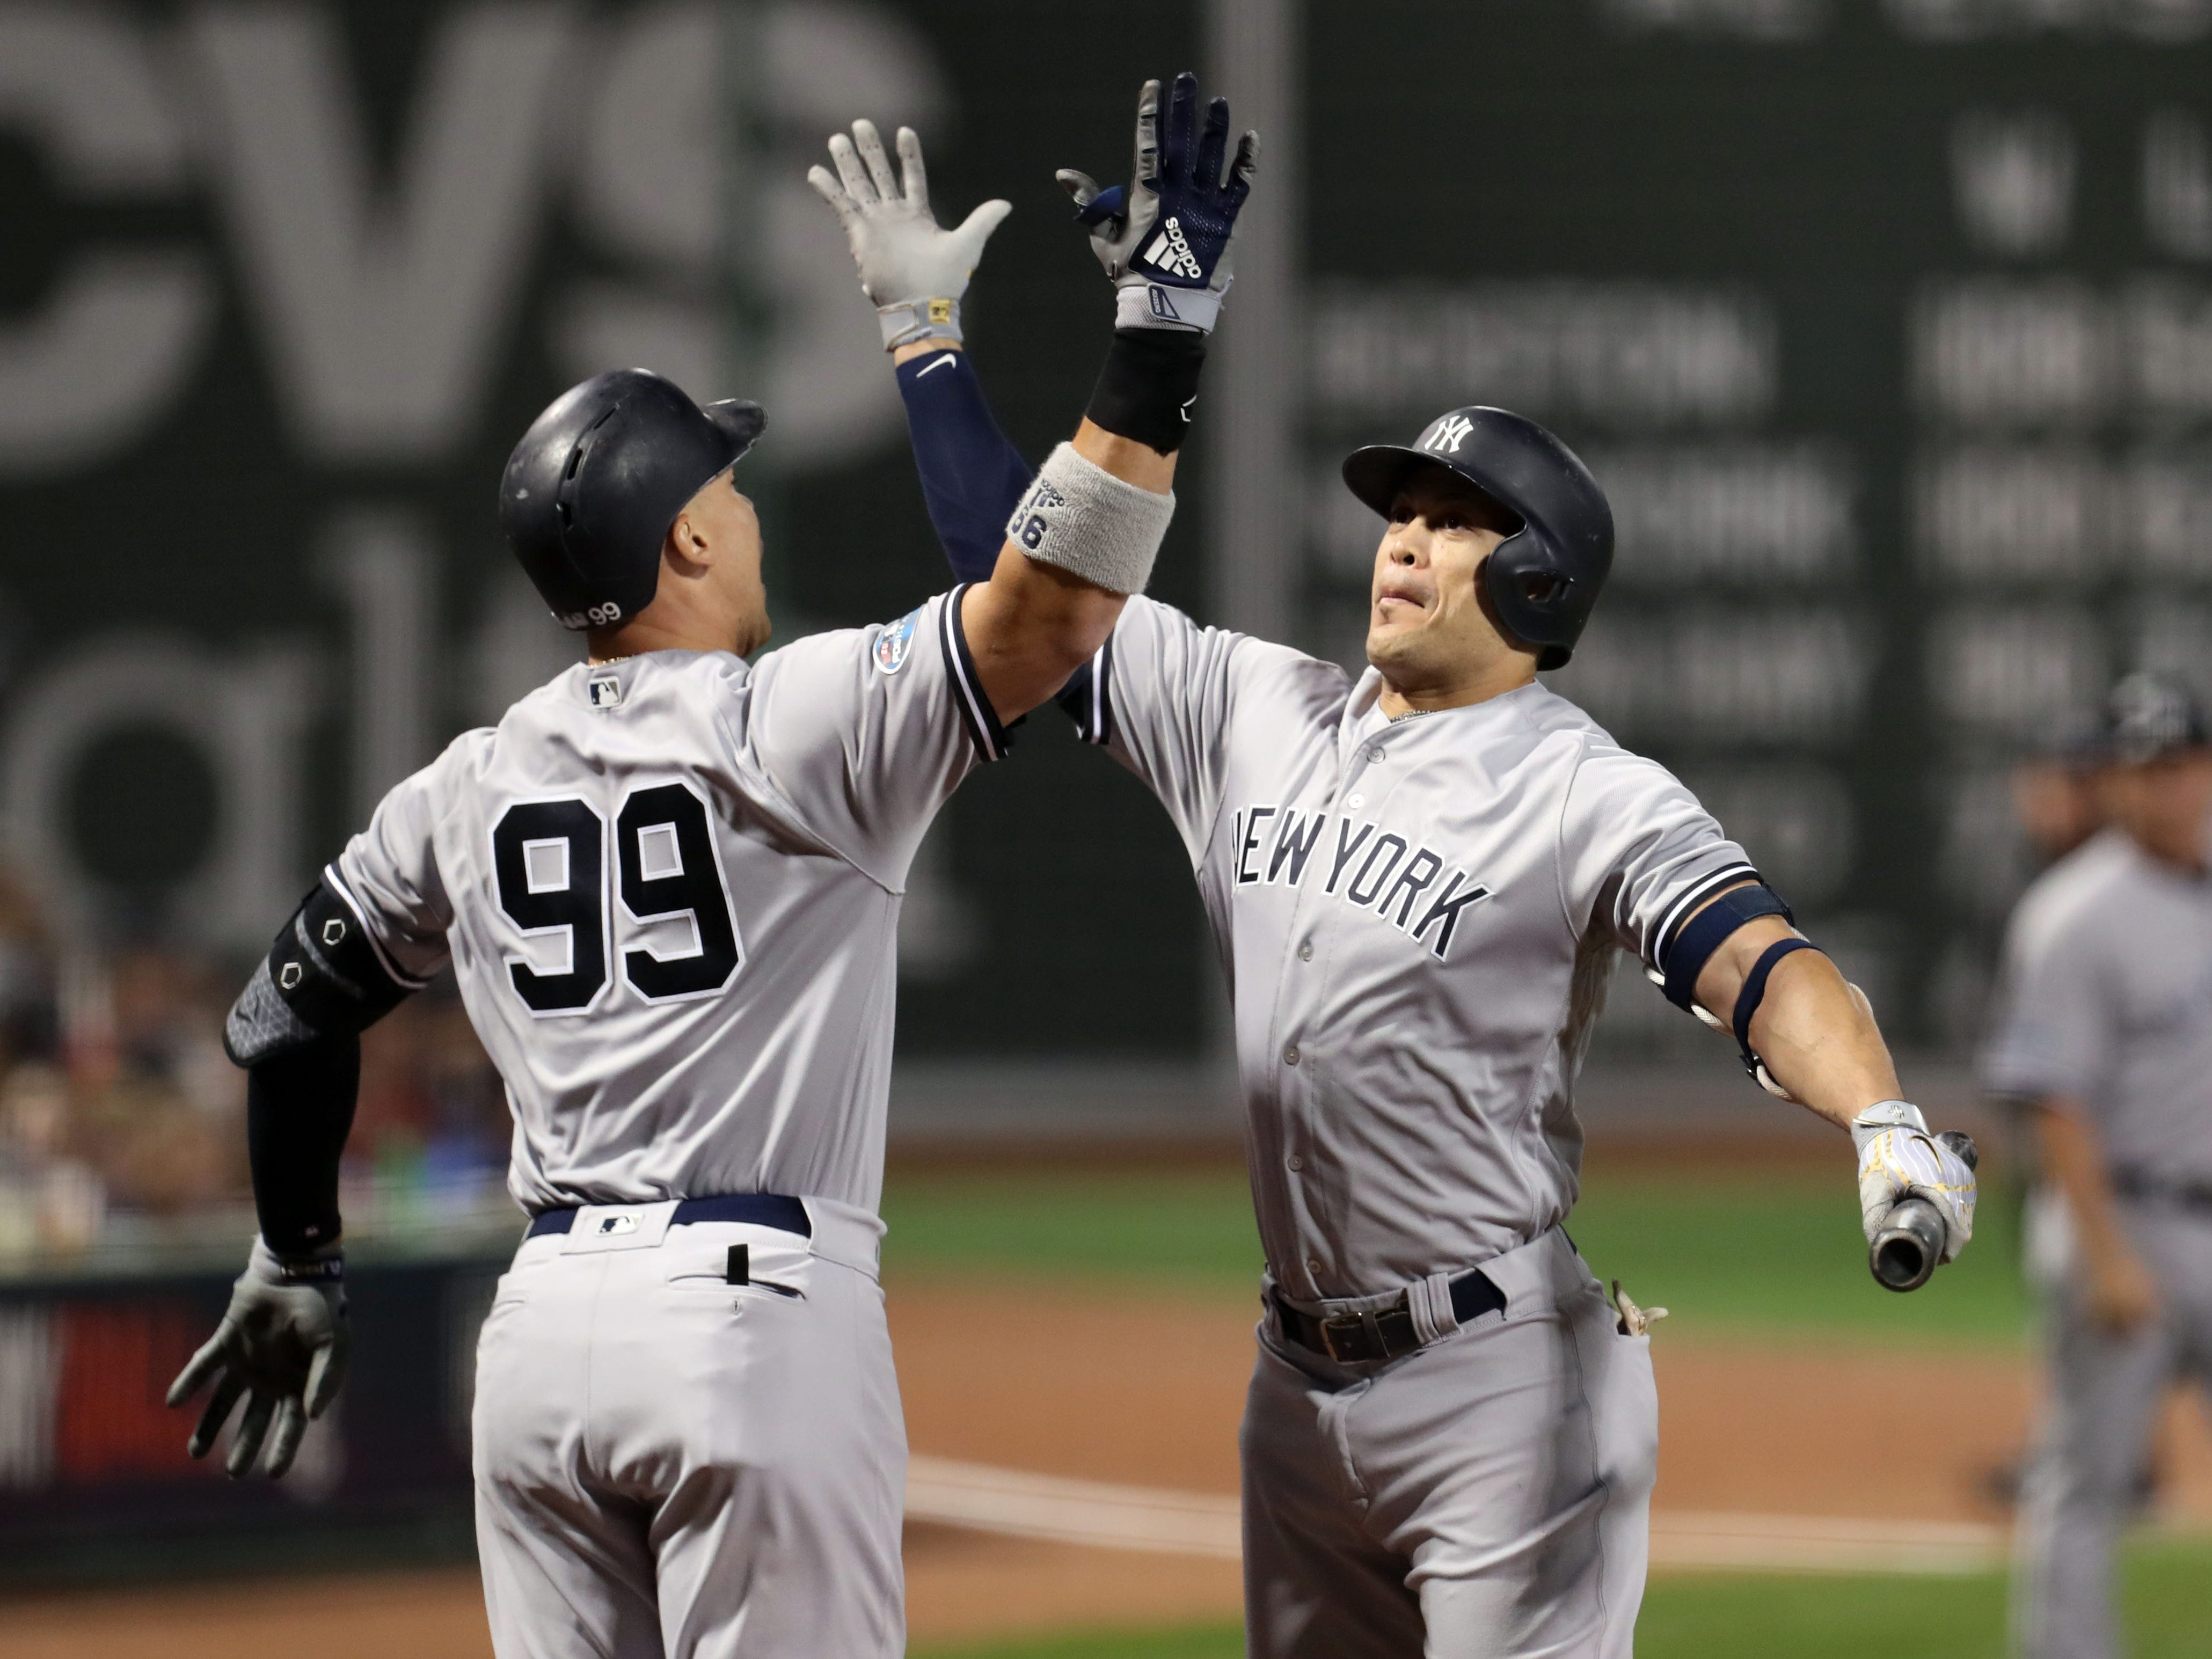 ALDS Game 2: Yankees'Aaron Judge celebrates with Giancarlo Stanton after hitting a solo home run.